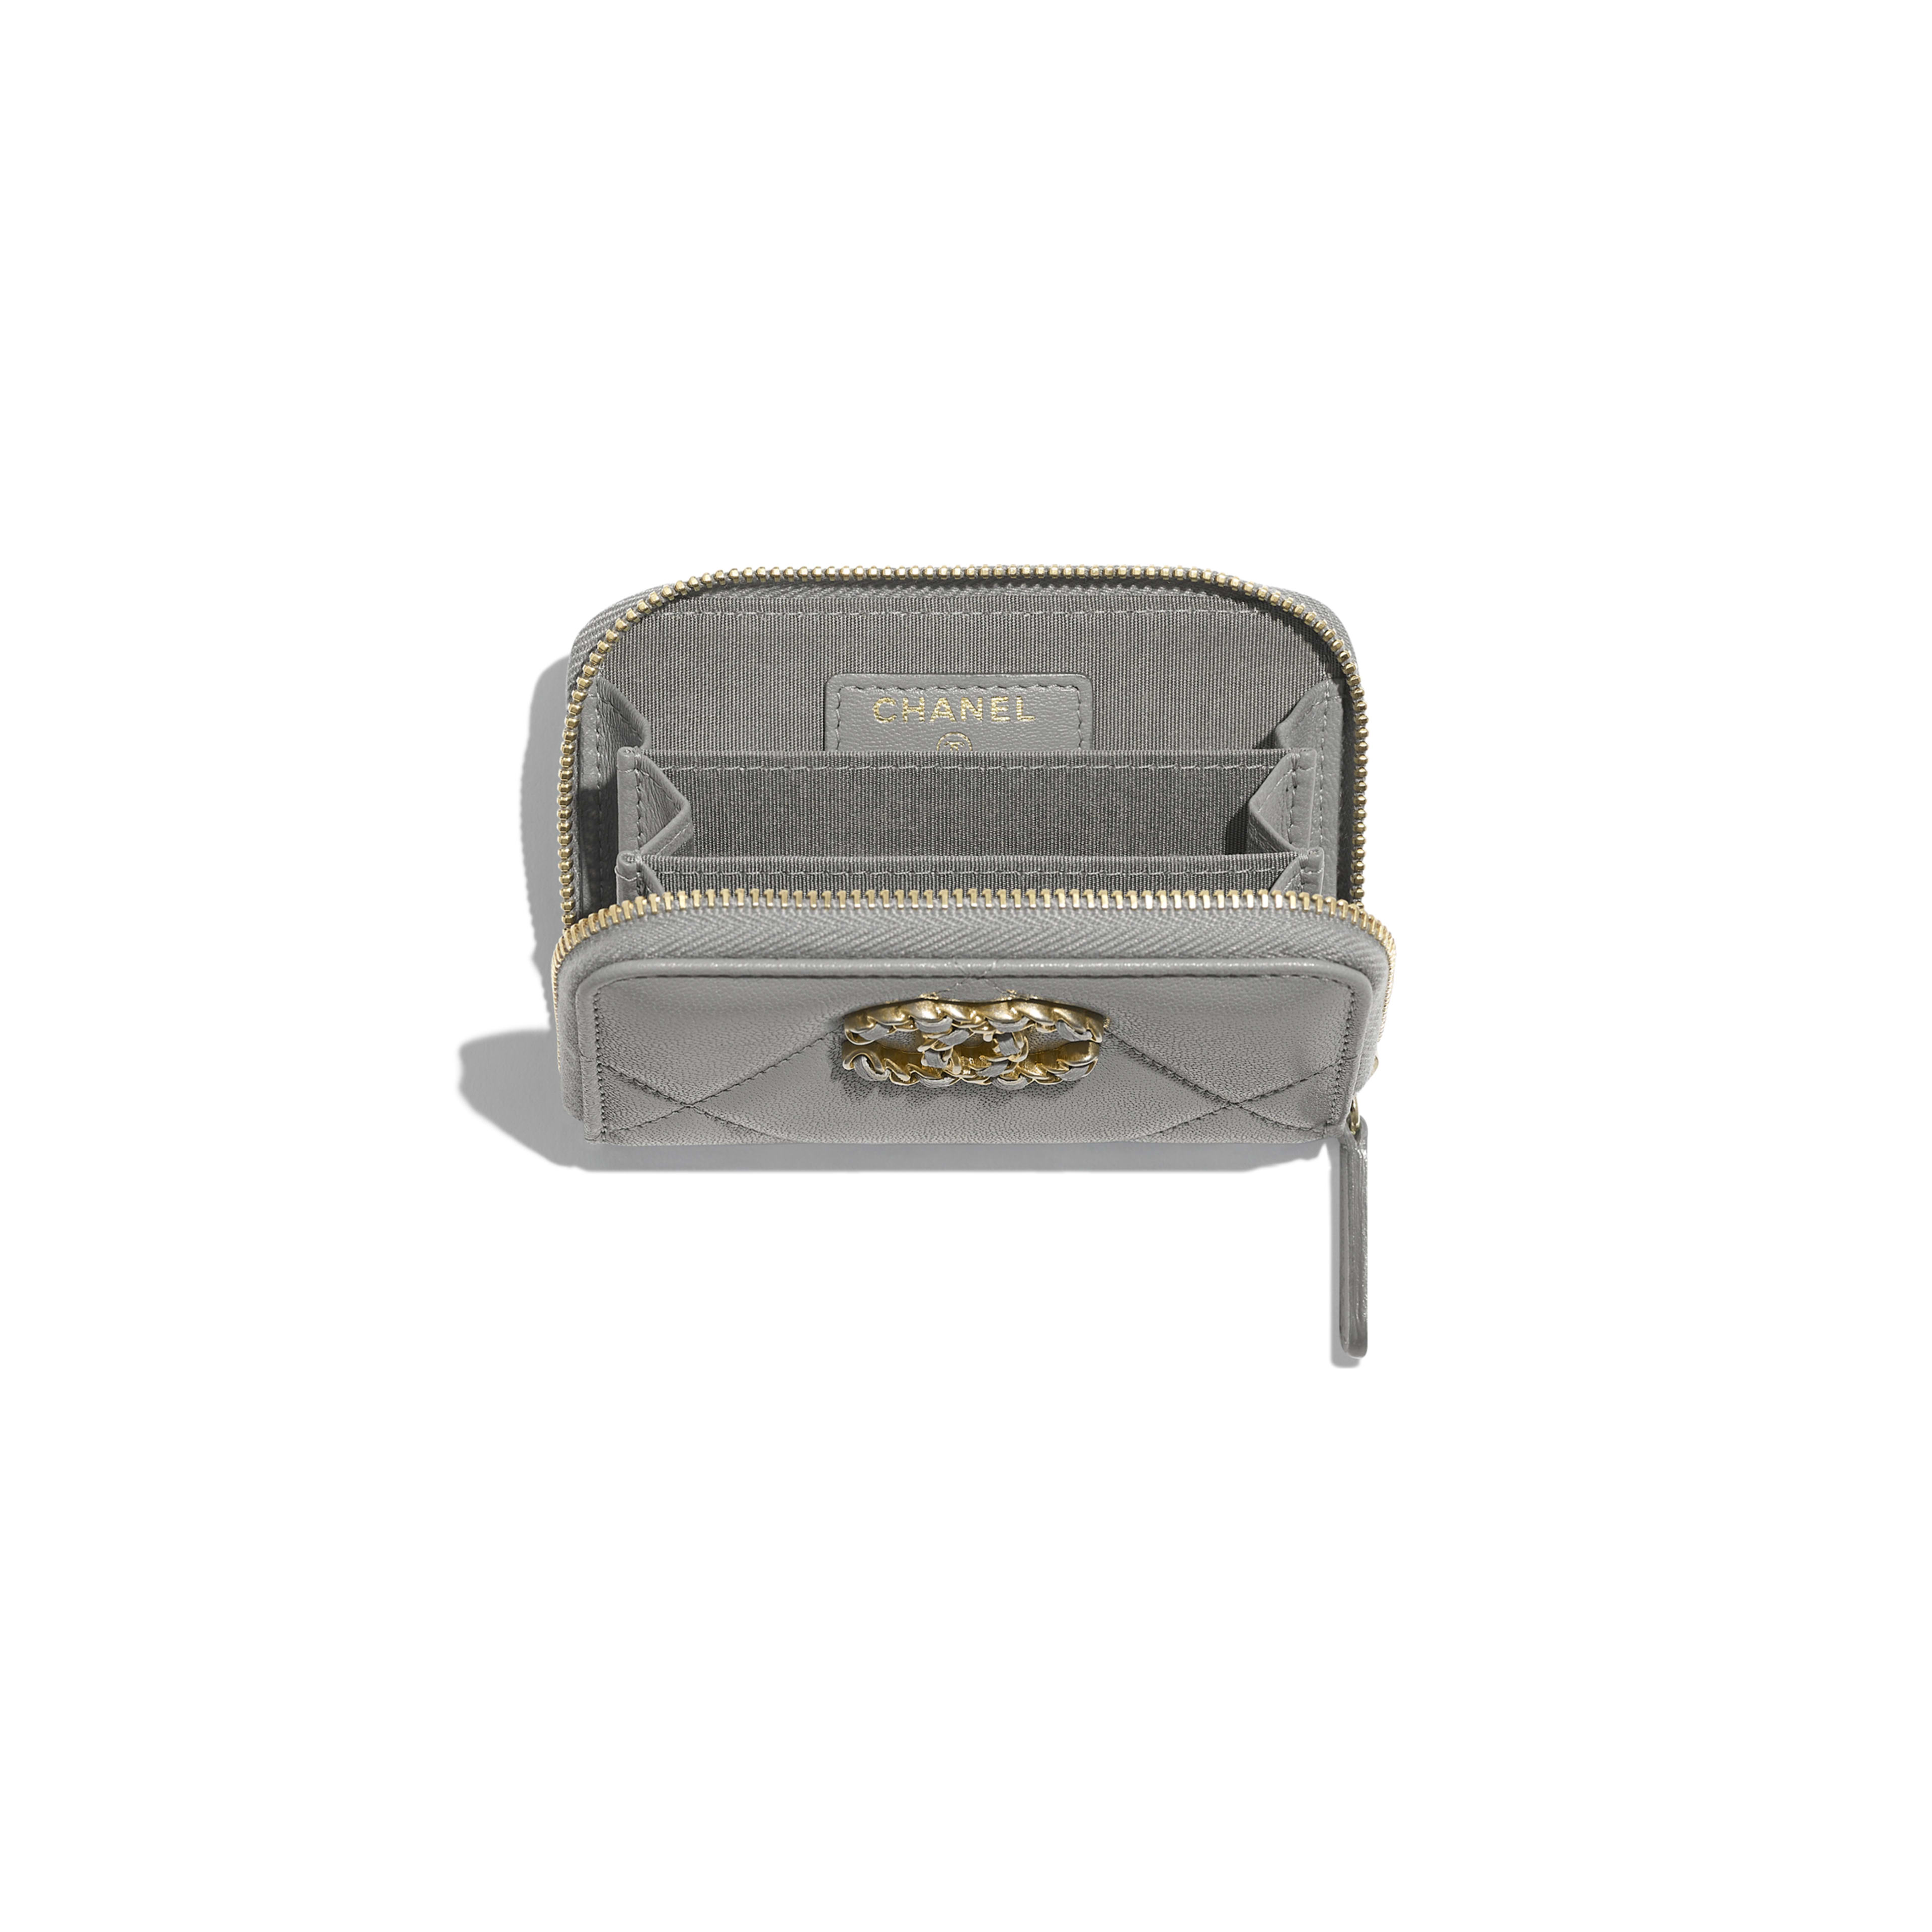 CHANEL 19 Zipped Coin Purse - Grey - Lambskin, Gold-Tone, Silver-Tone & Ruthenium-Finish Metal - Other view - see full sized version